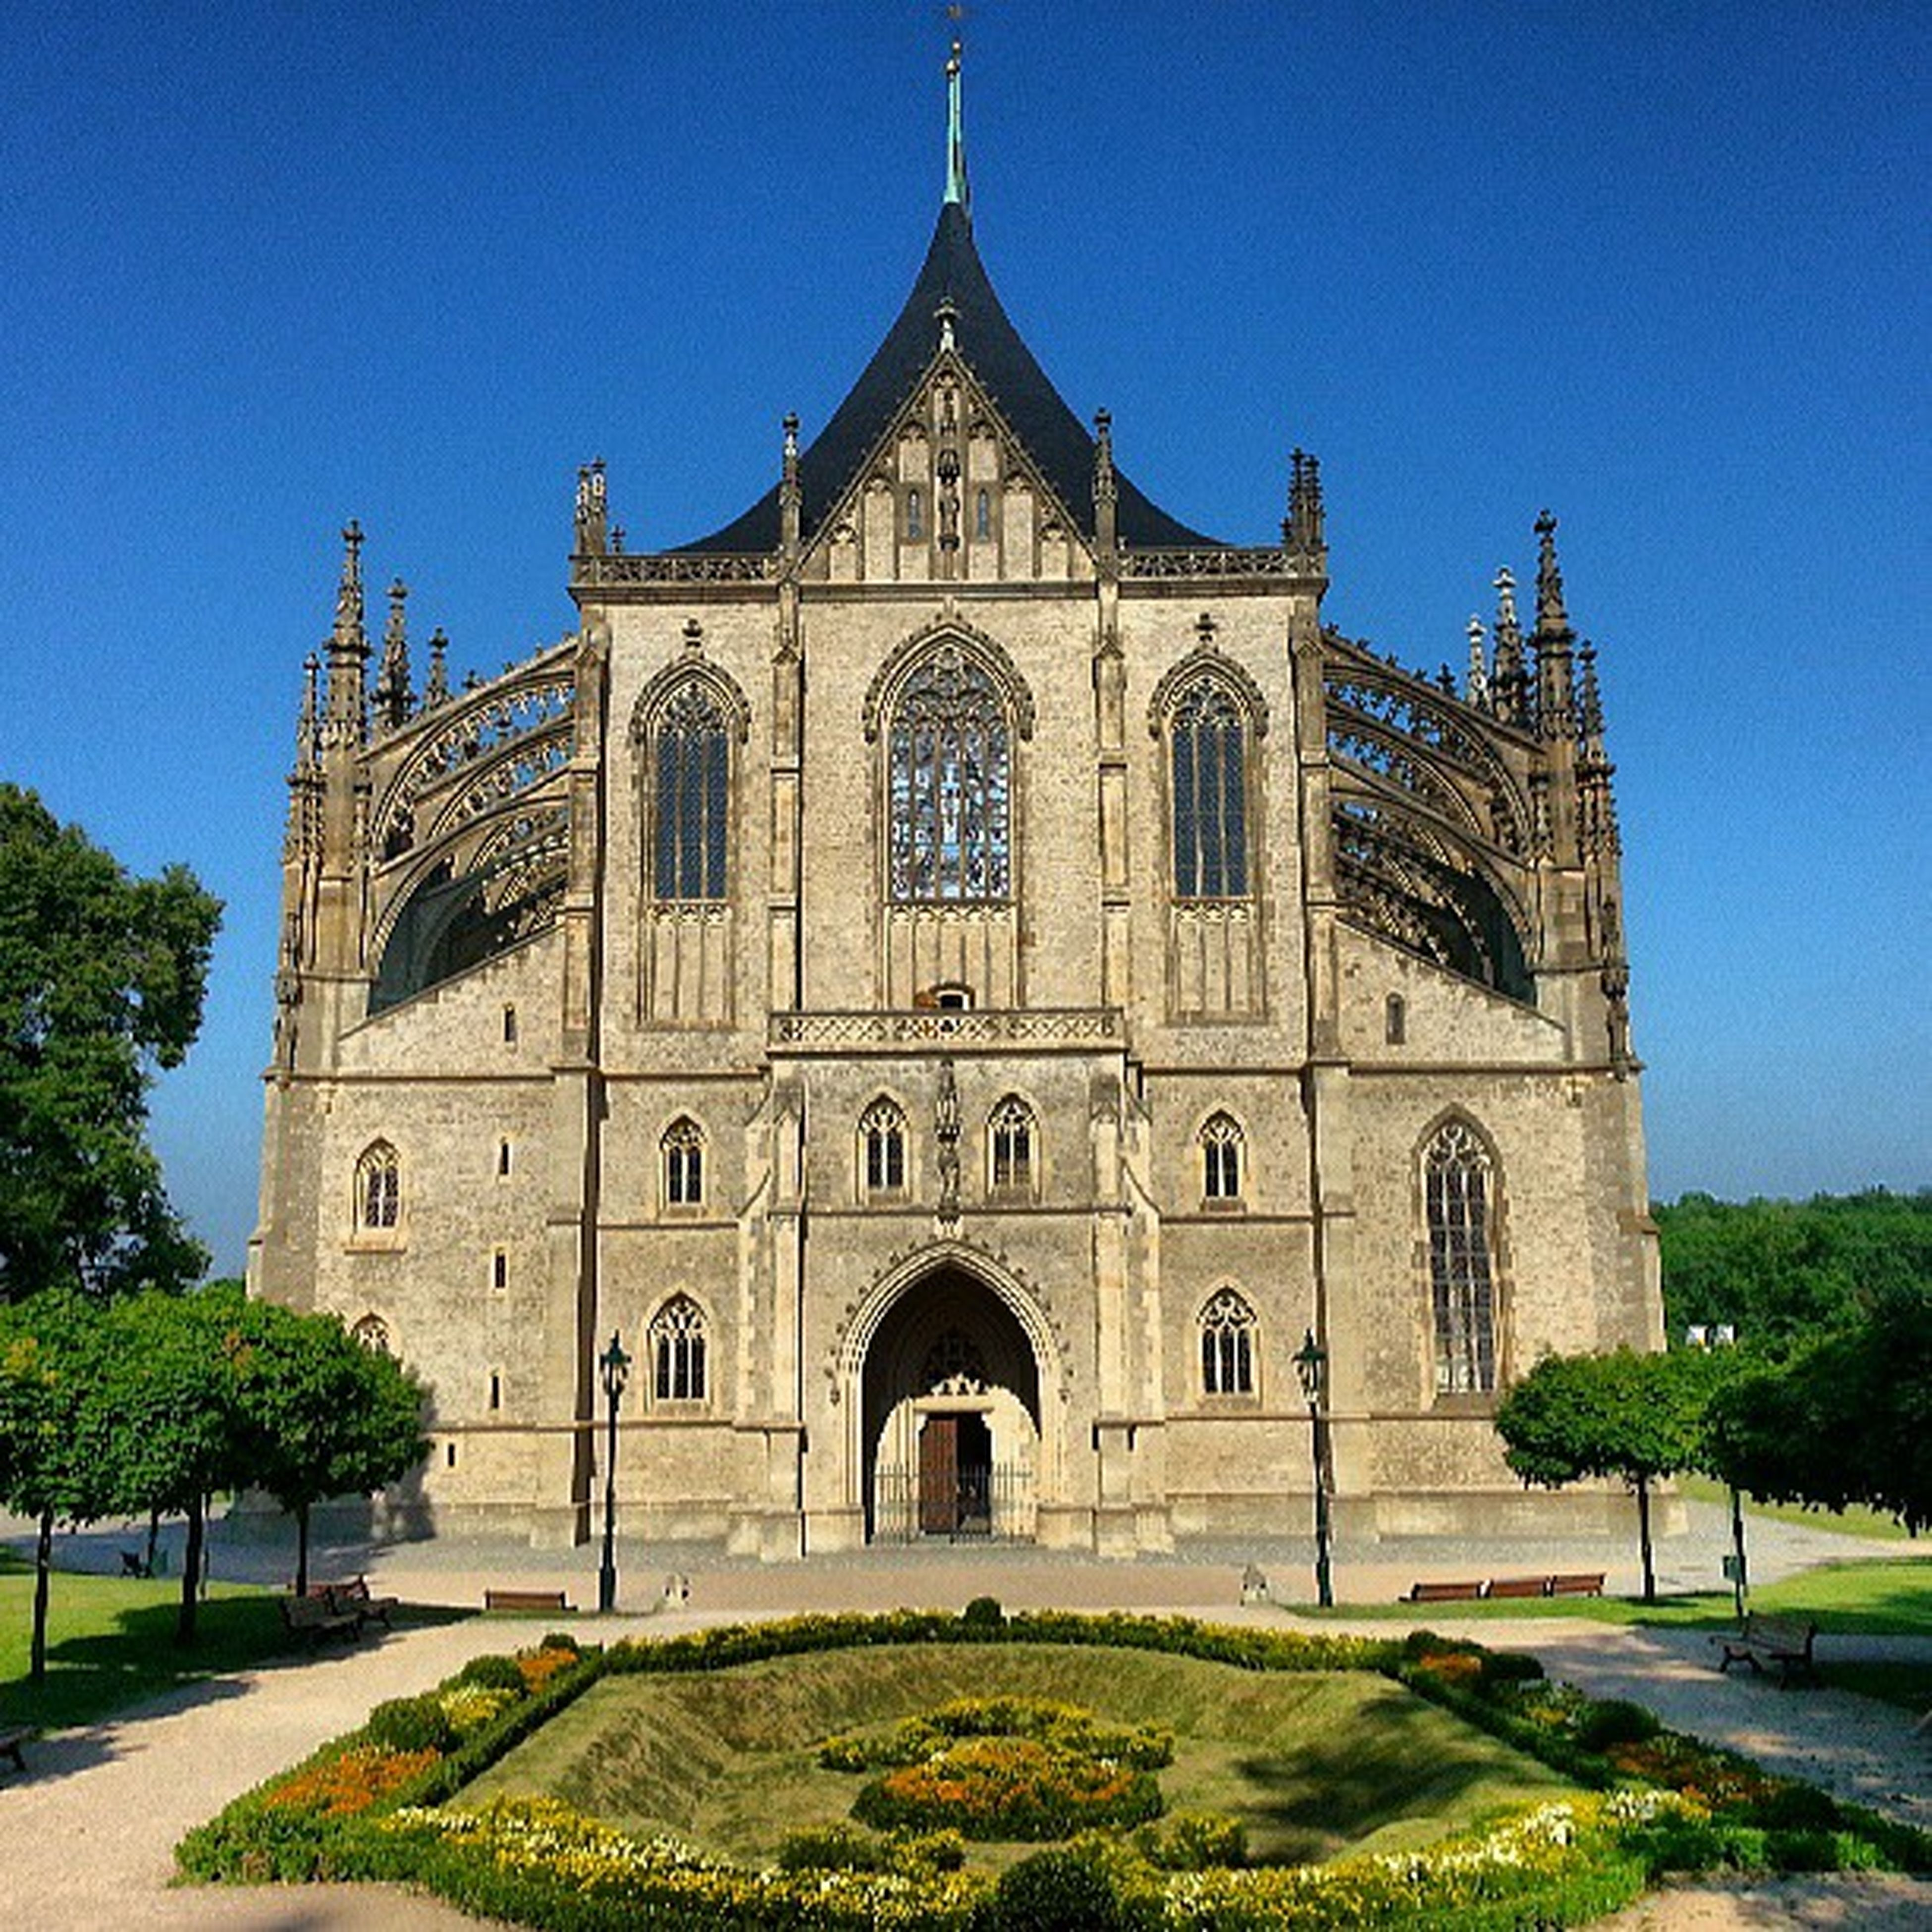 architecture, building exterior, built structure, place of worship, religion, church, facade, clear sky, tree, blue, spirituality, lawn, low angle view, grass, arch, sunlight, sky, cathedral